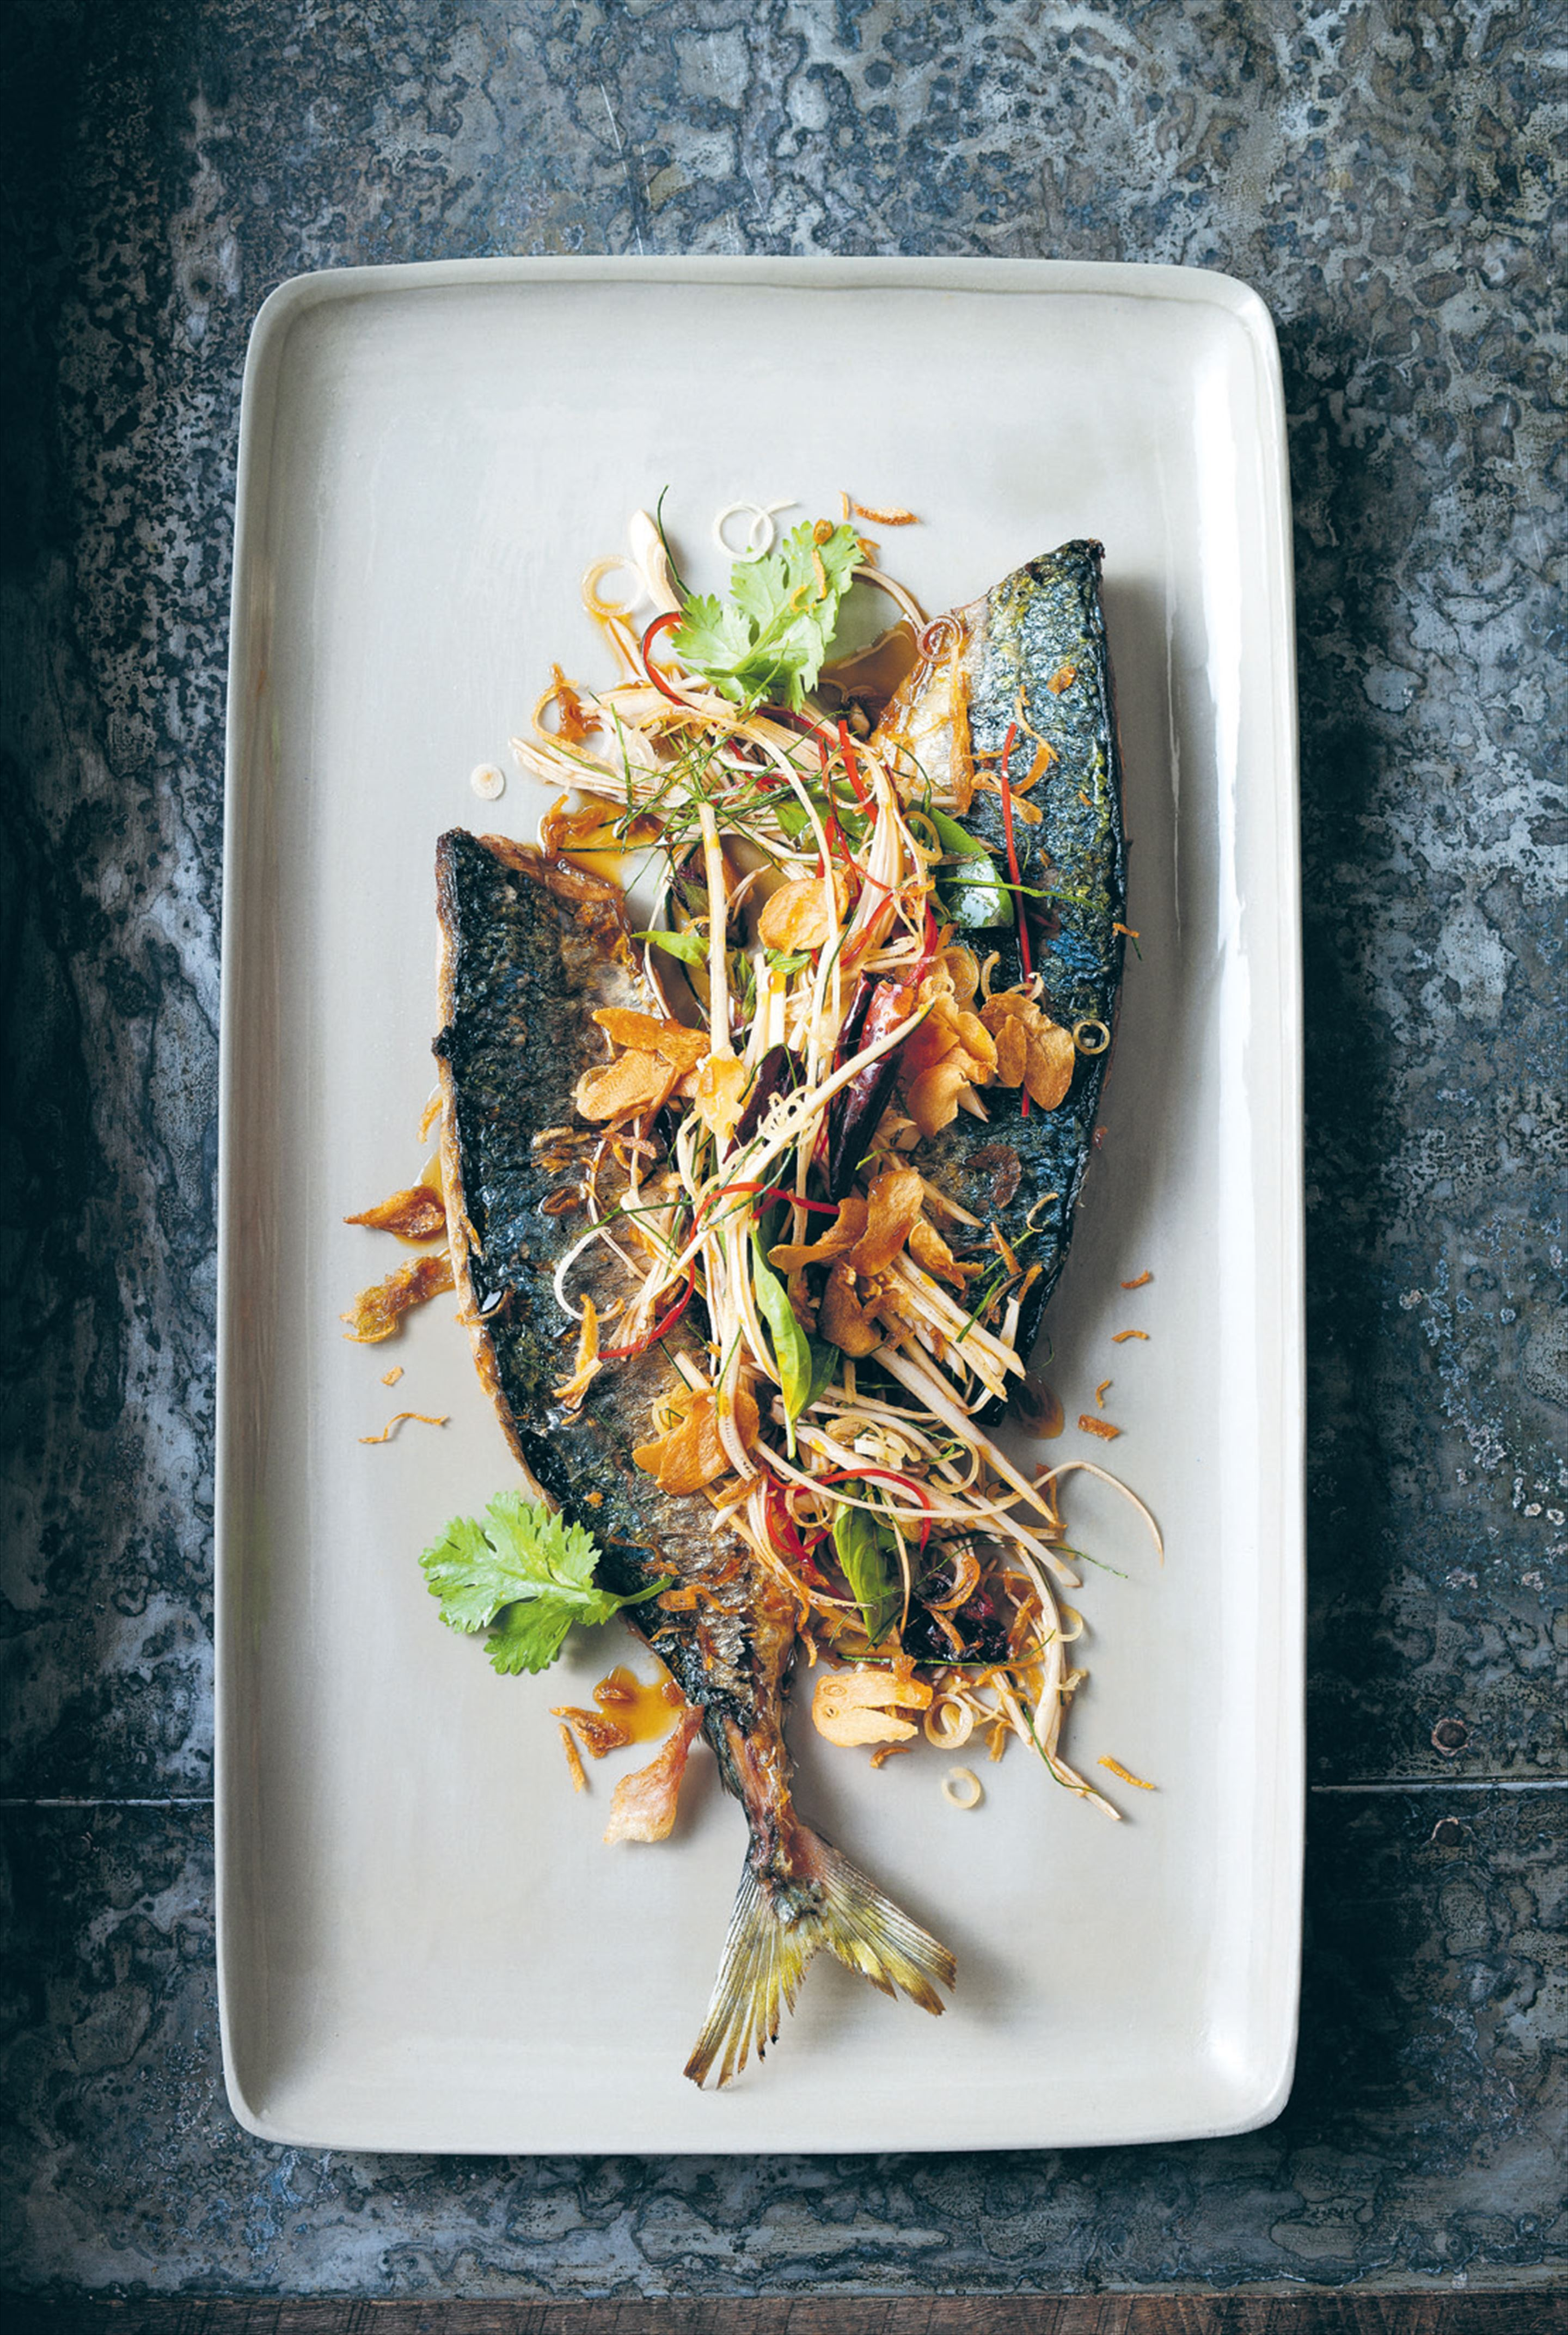 Seared mackerel with banana flower and sweet fish sauce